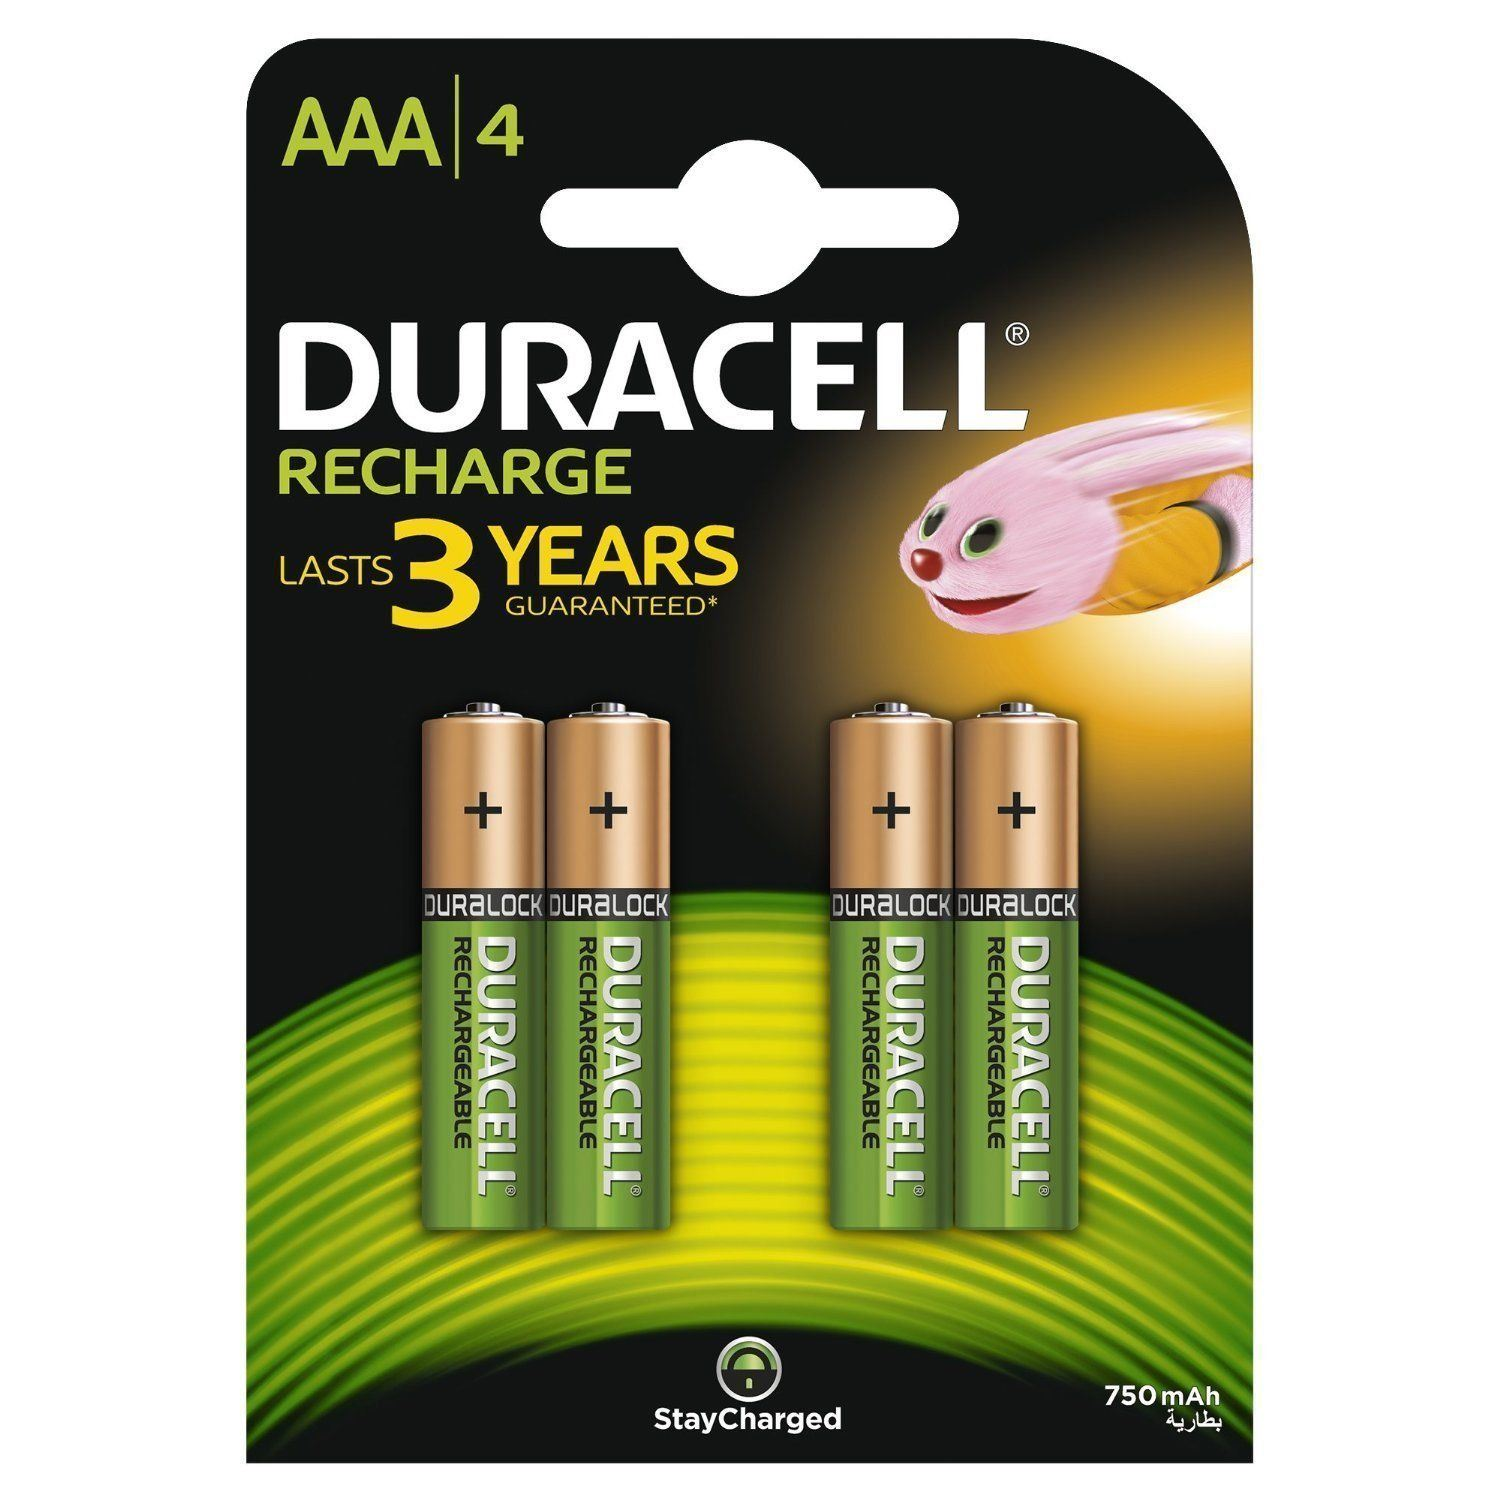 4 X Duracell 750mah Aaa Size Rechargeable Accu Batteries